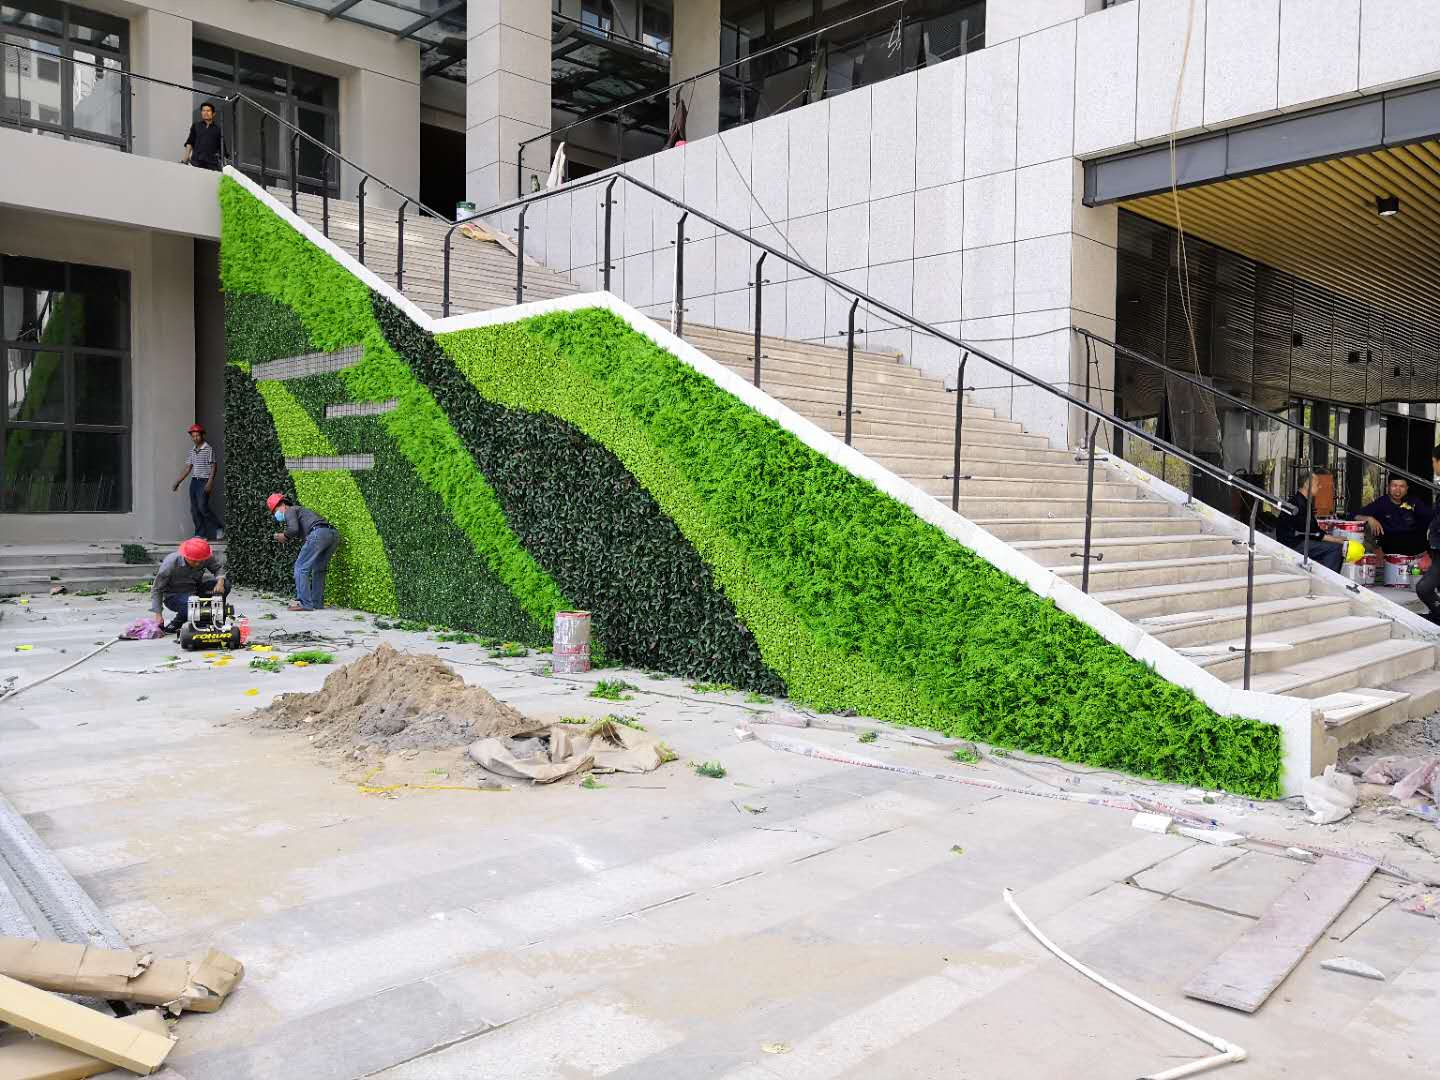 artificial-wall-covering-plants-for-business-improvement